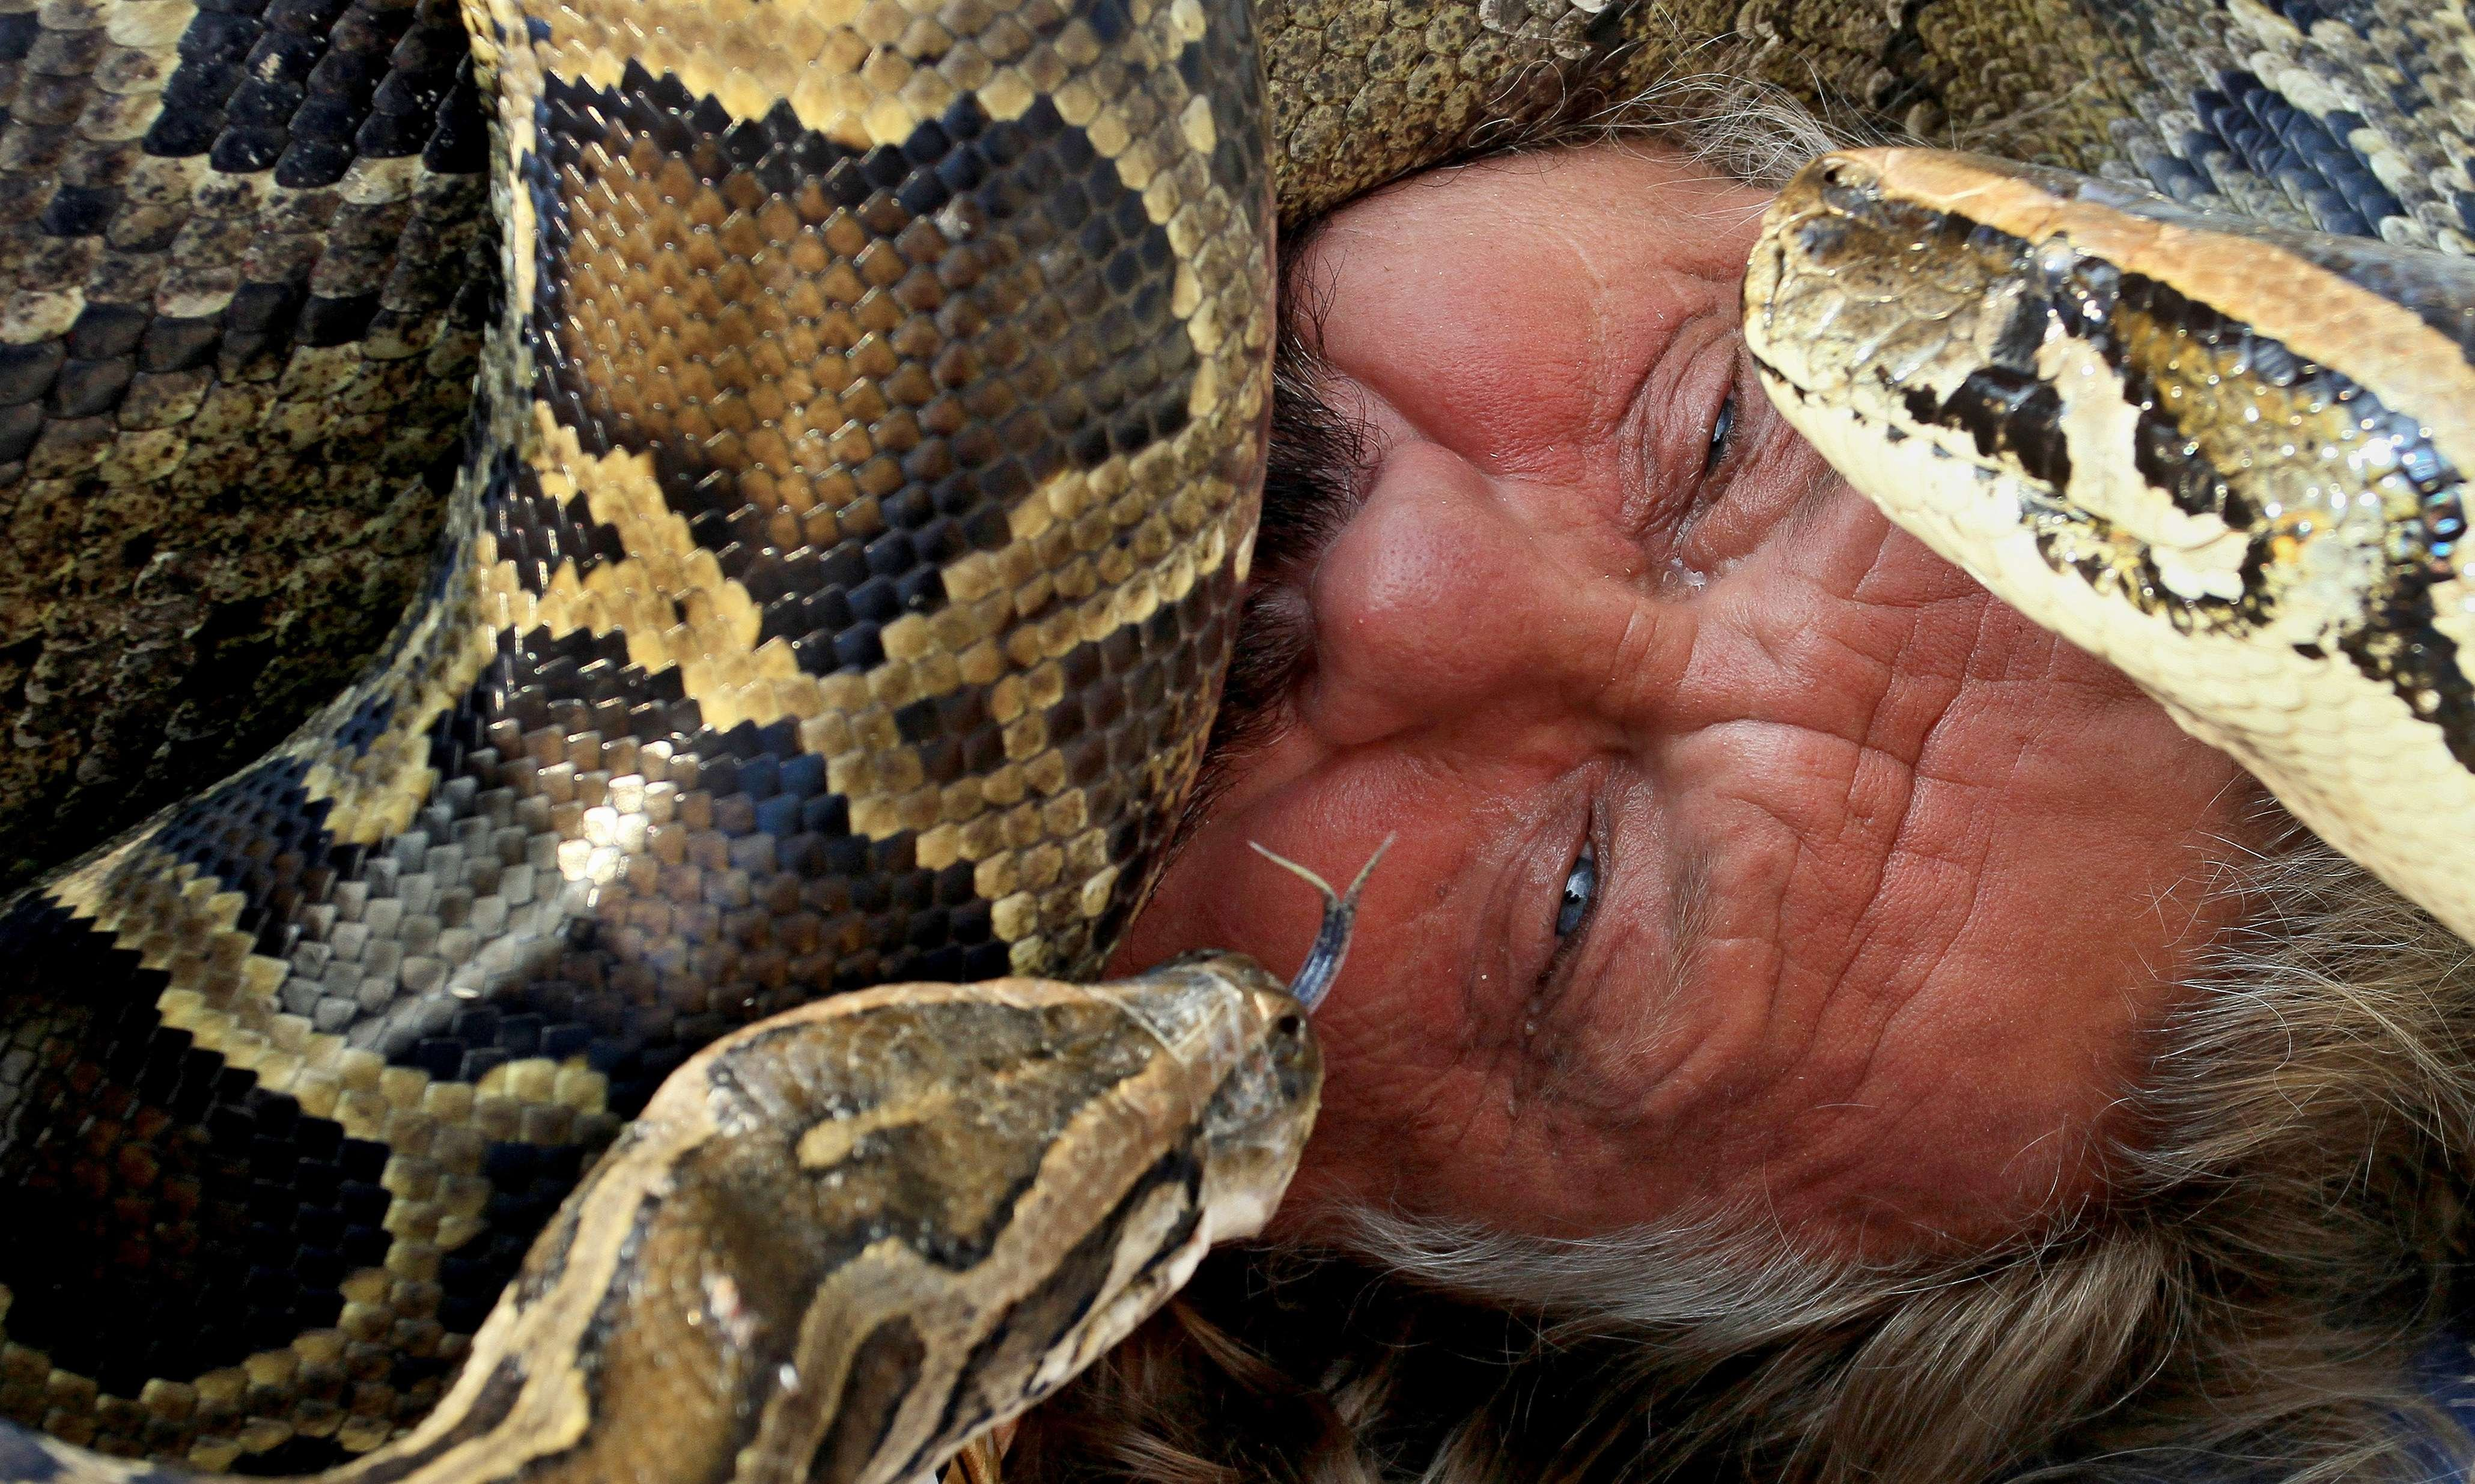 Circus director Jaromir Joo is seen behind two snakes during a record attempt on Sept. 9, 2014 on St James Square in Brno, Czech Republic. Three boa constrictors and two pythons, weighing more than 500 kilograms, were laid on Joo.